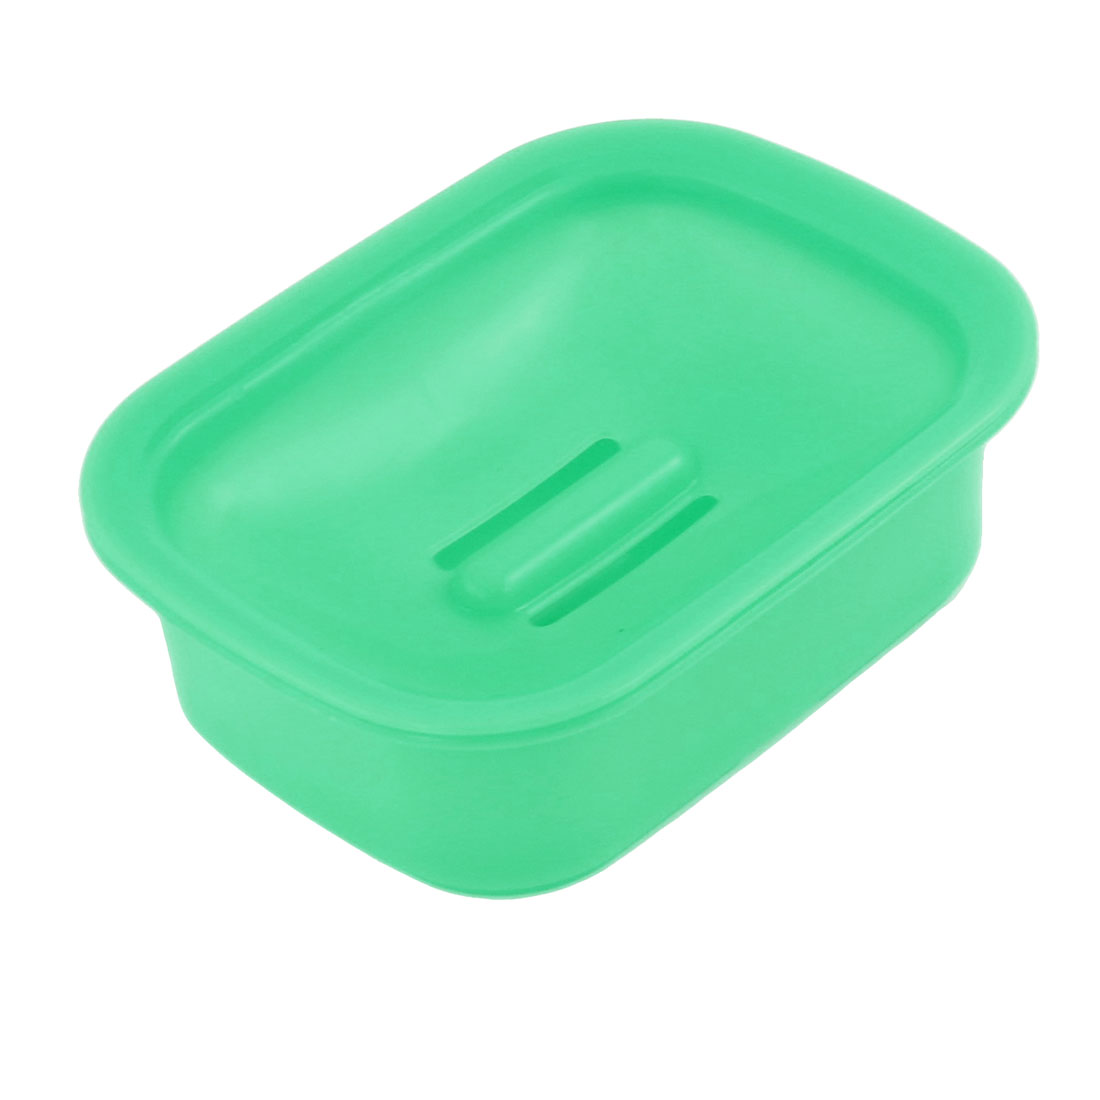 Green Hard Plastic Rectangle Soap Dish Tray Holder Box Case for Bathroom